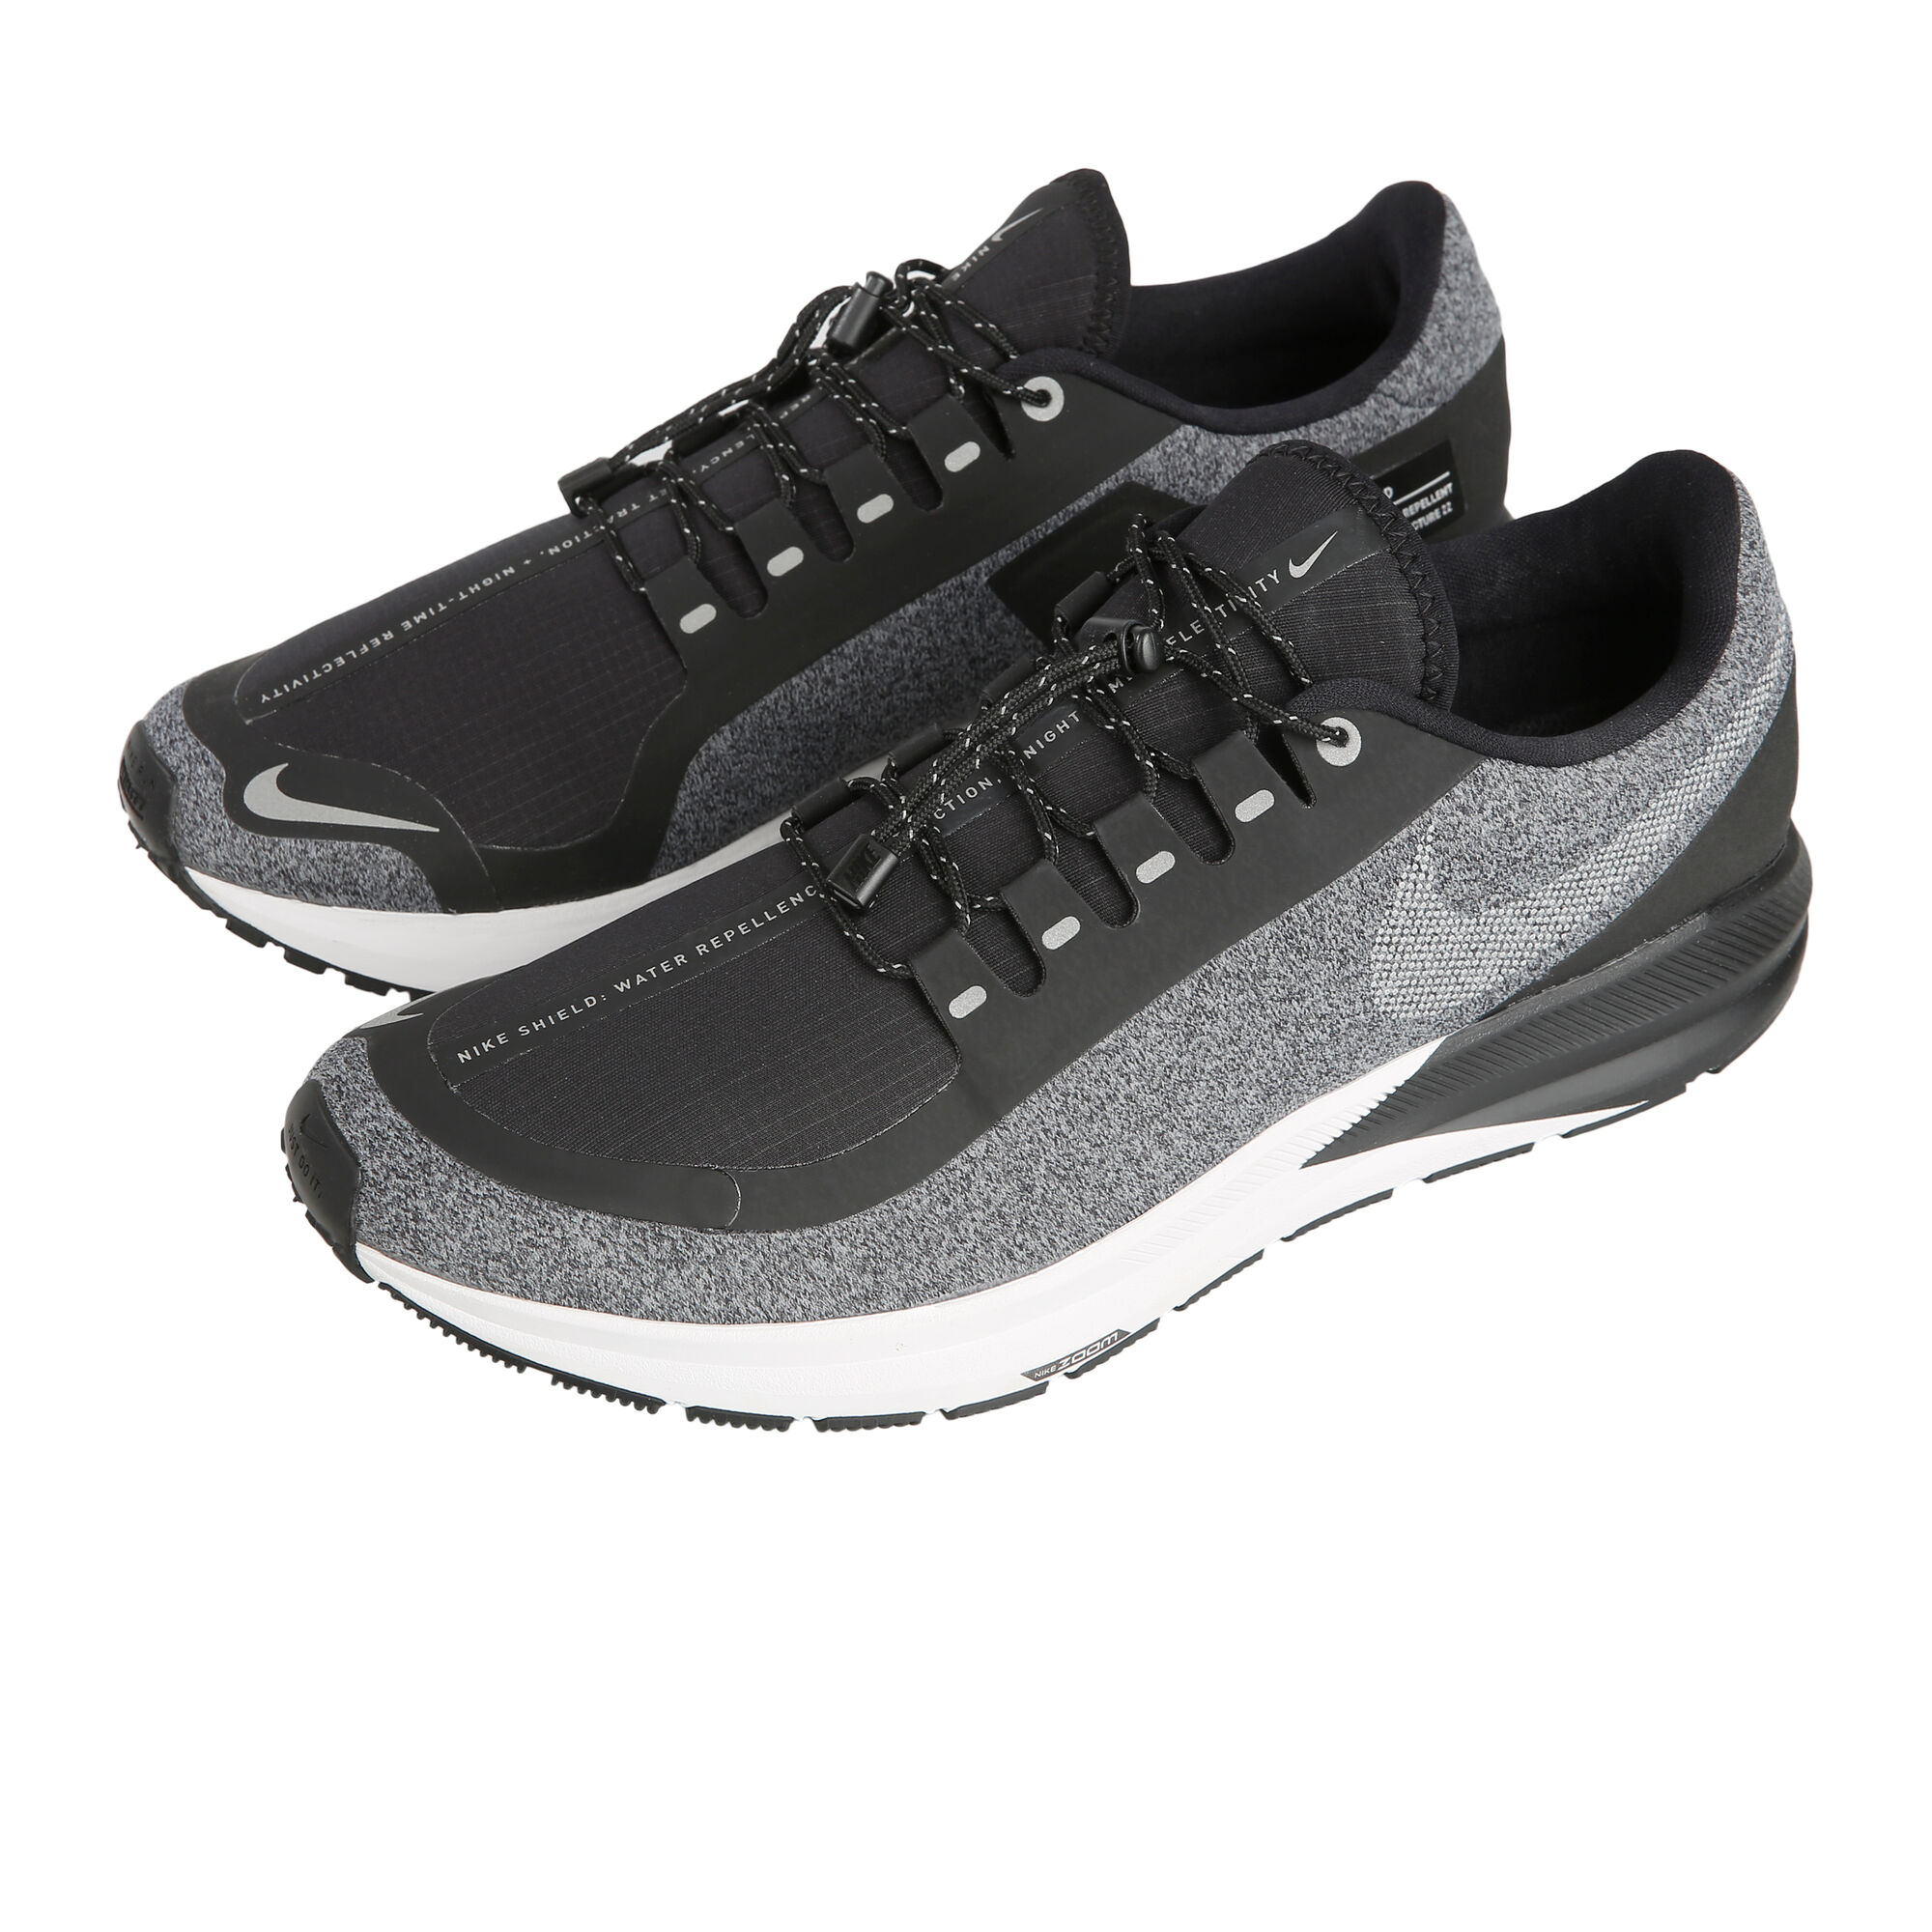 official photos d31c6 17ceb buy Nike Air Zoom Structure 22 Shield Stability Running Shoe ...